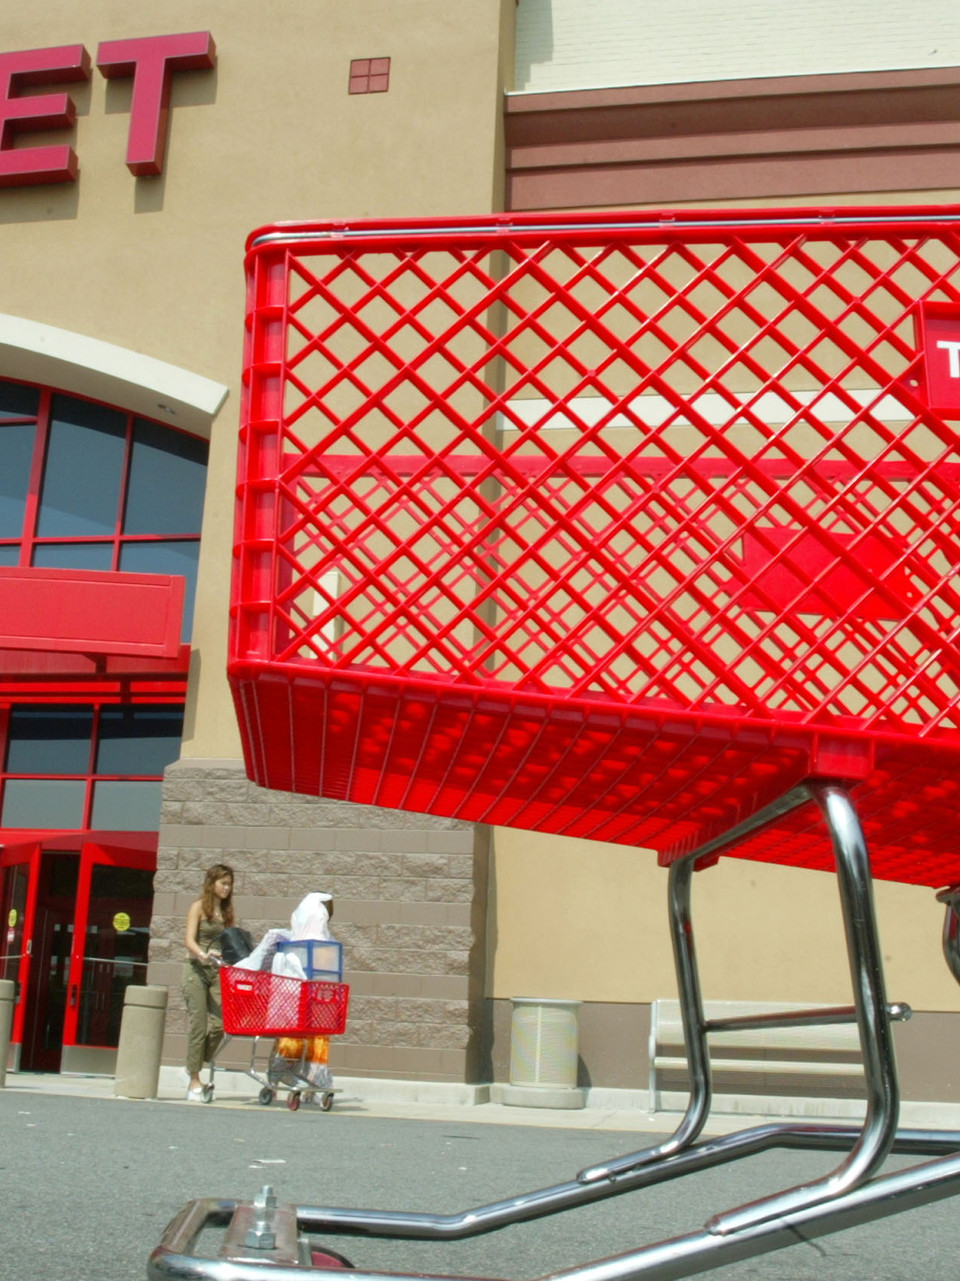 Target Joins Other Retailers Closing